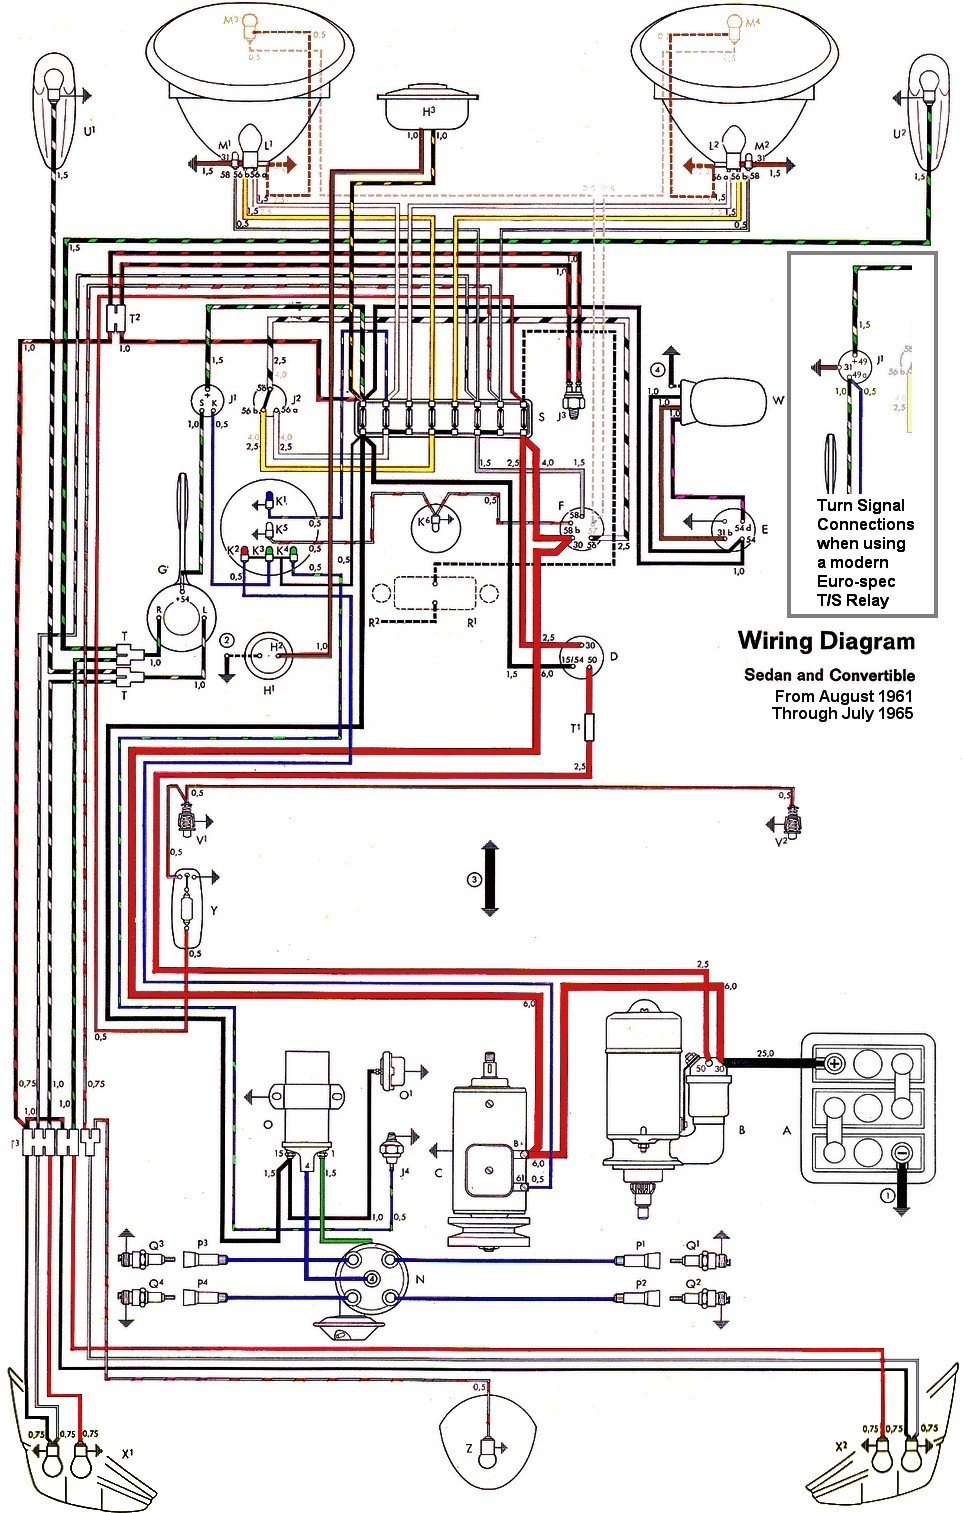 bug_62 65withinset thesamba com type 1 wiring diagrams 1973 vw wiring diagram at mifinder.co